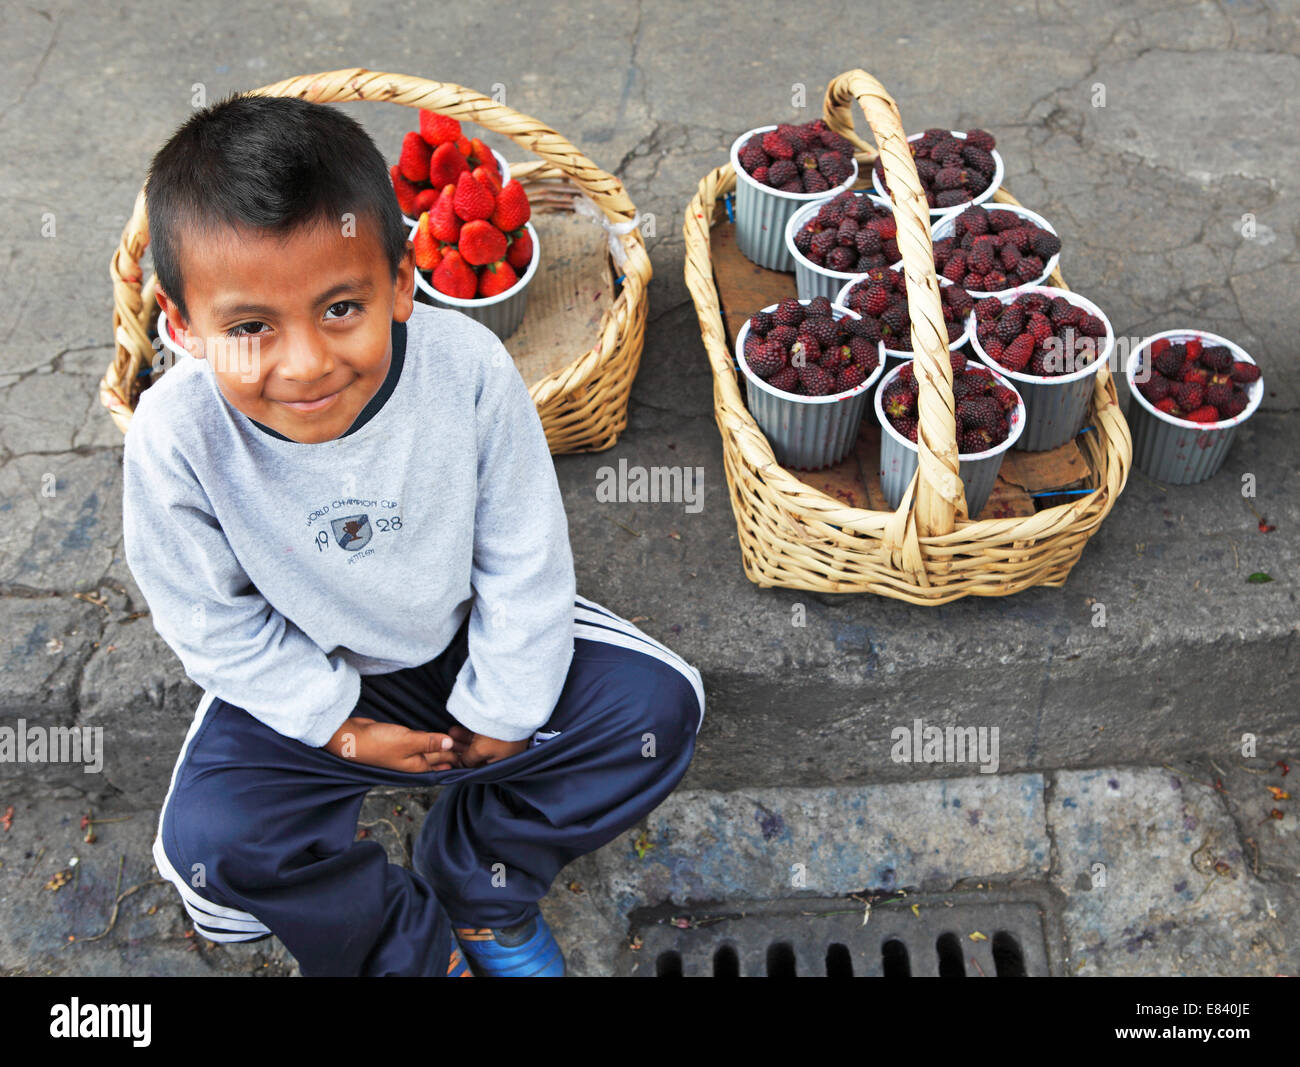 Boy with fruit punnets sitting on the curb of a street, Ibarra grocery market, Imbabura Province, Ecuador - Stock Image